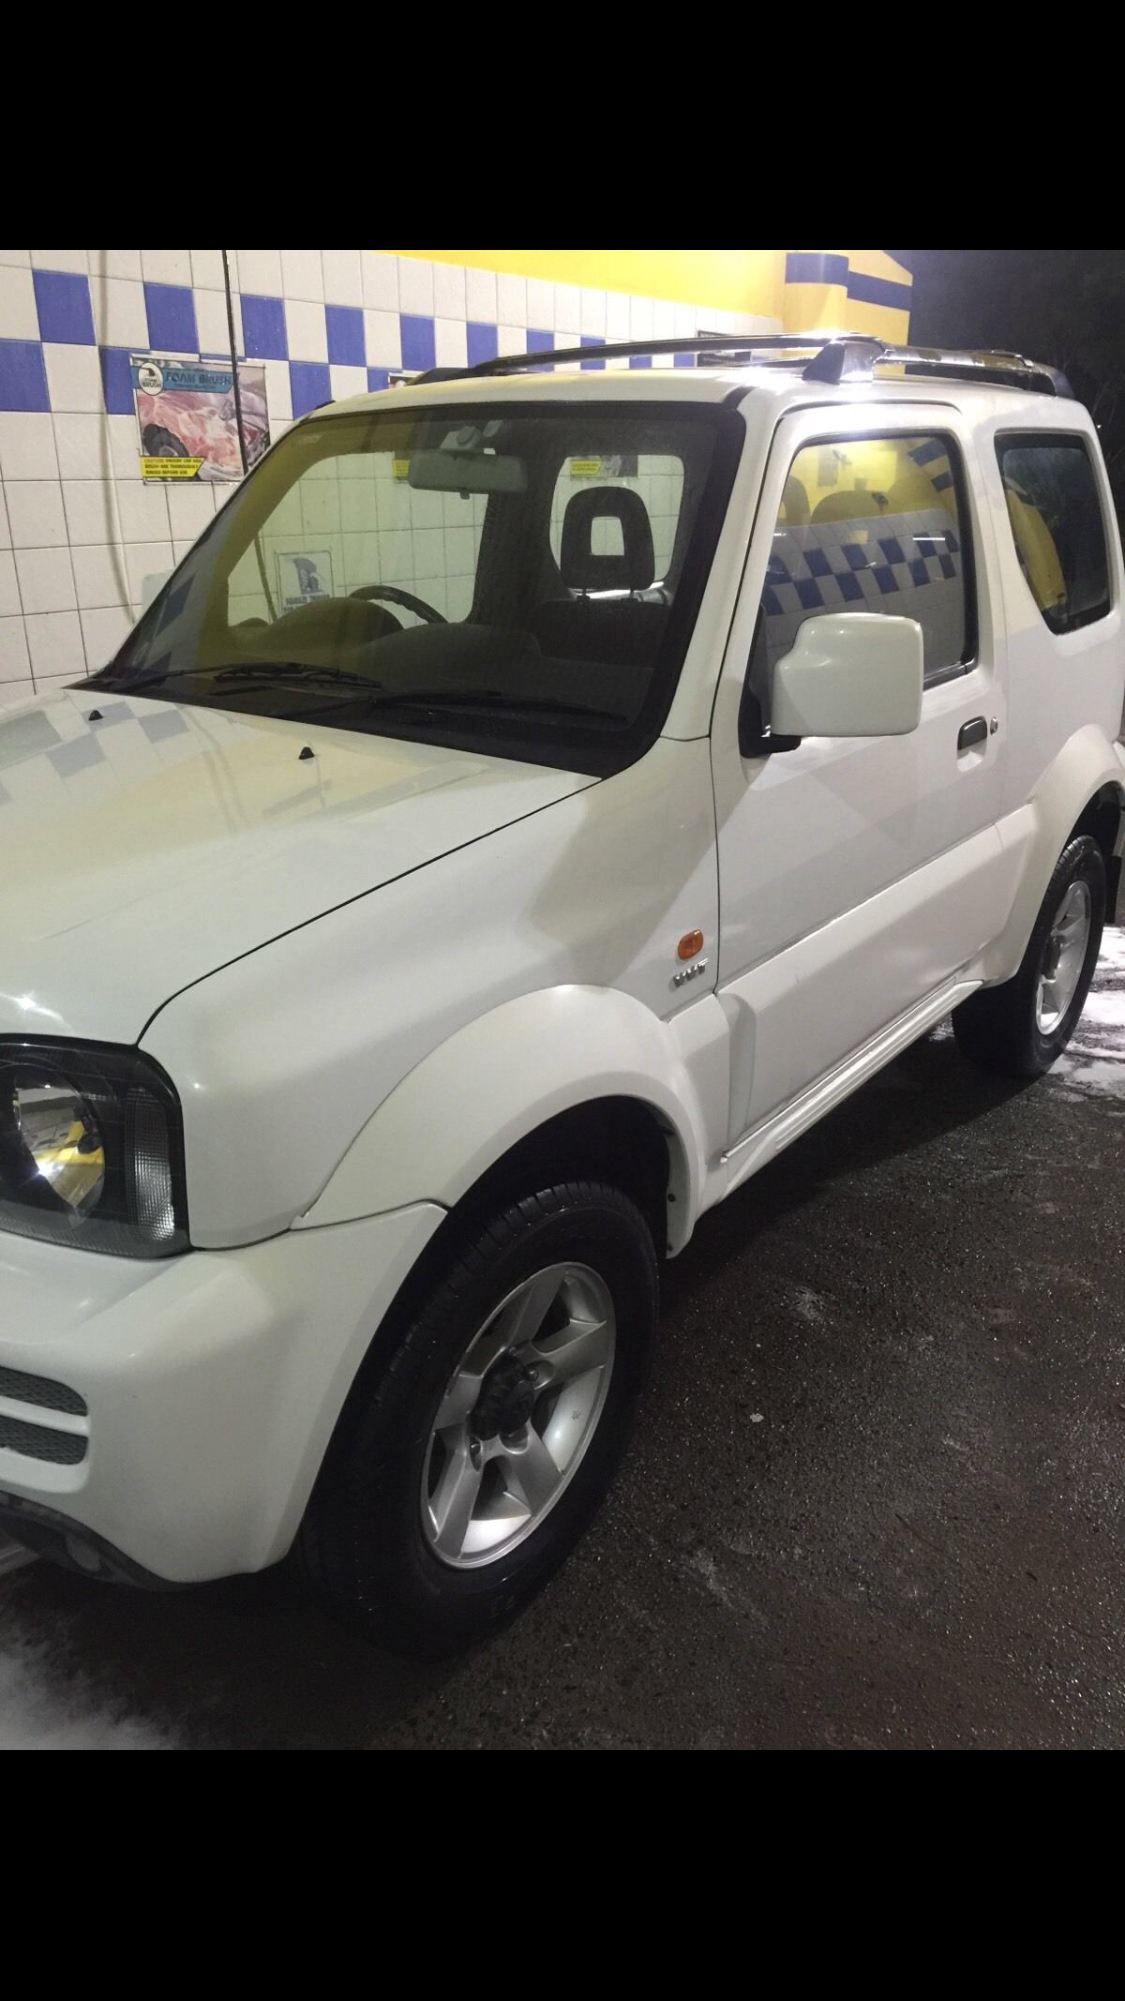 2007 suzuki jimny jlx 4x4 upgrade car sales qld brisbane north 2912867. Black Bedroom Furniture Sets. Home Design Ideas